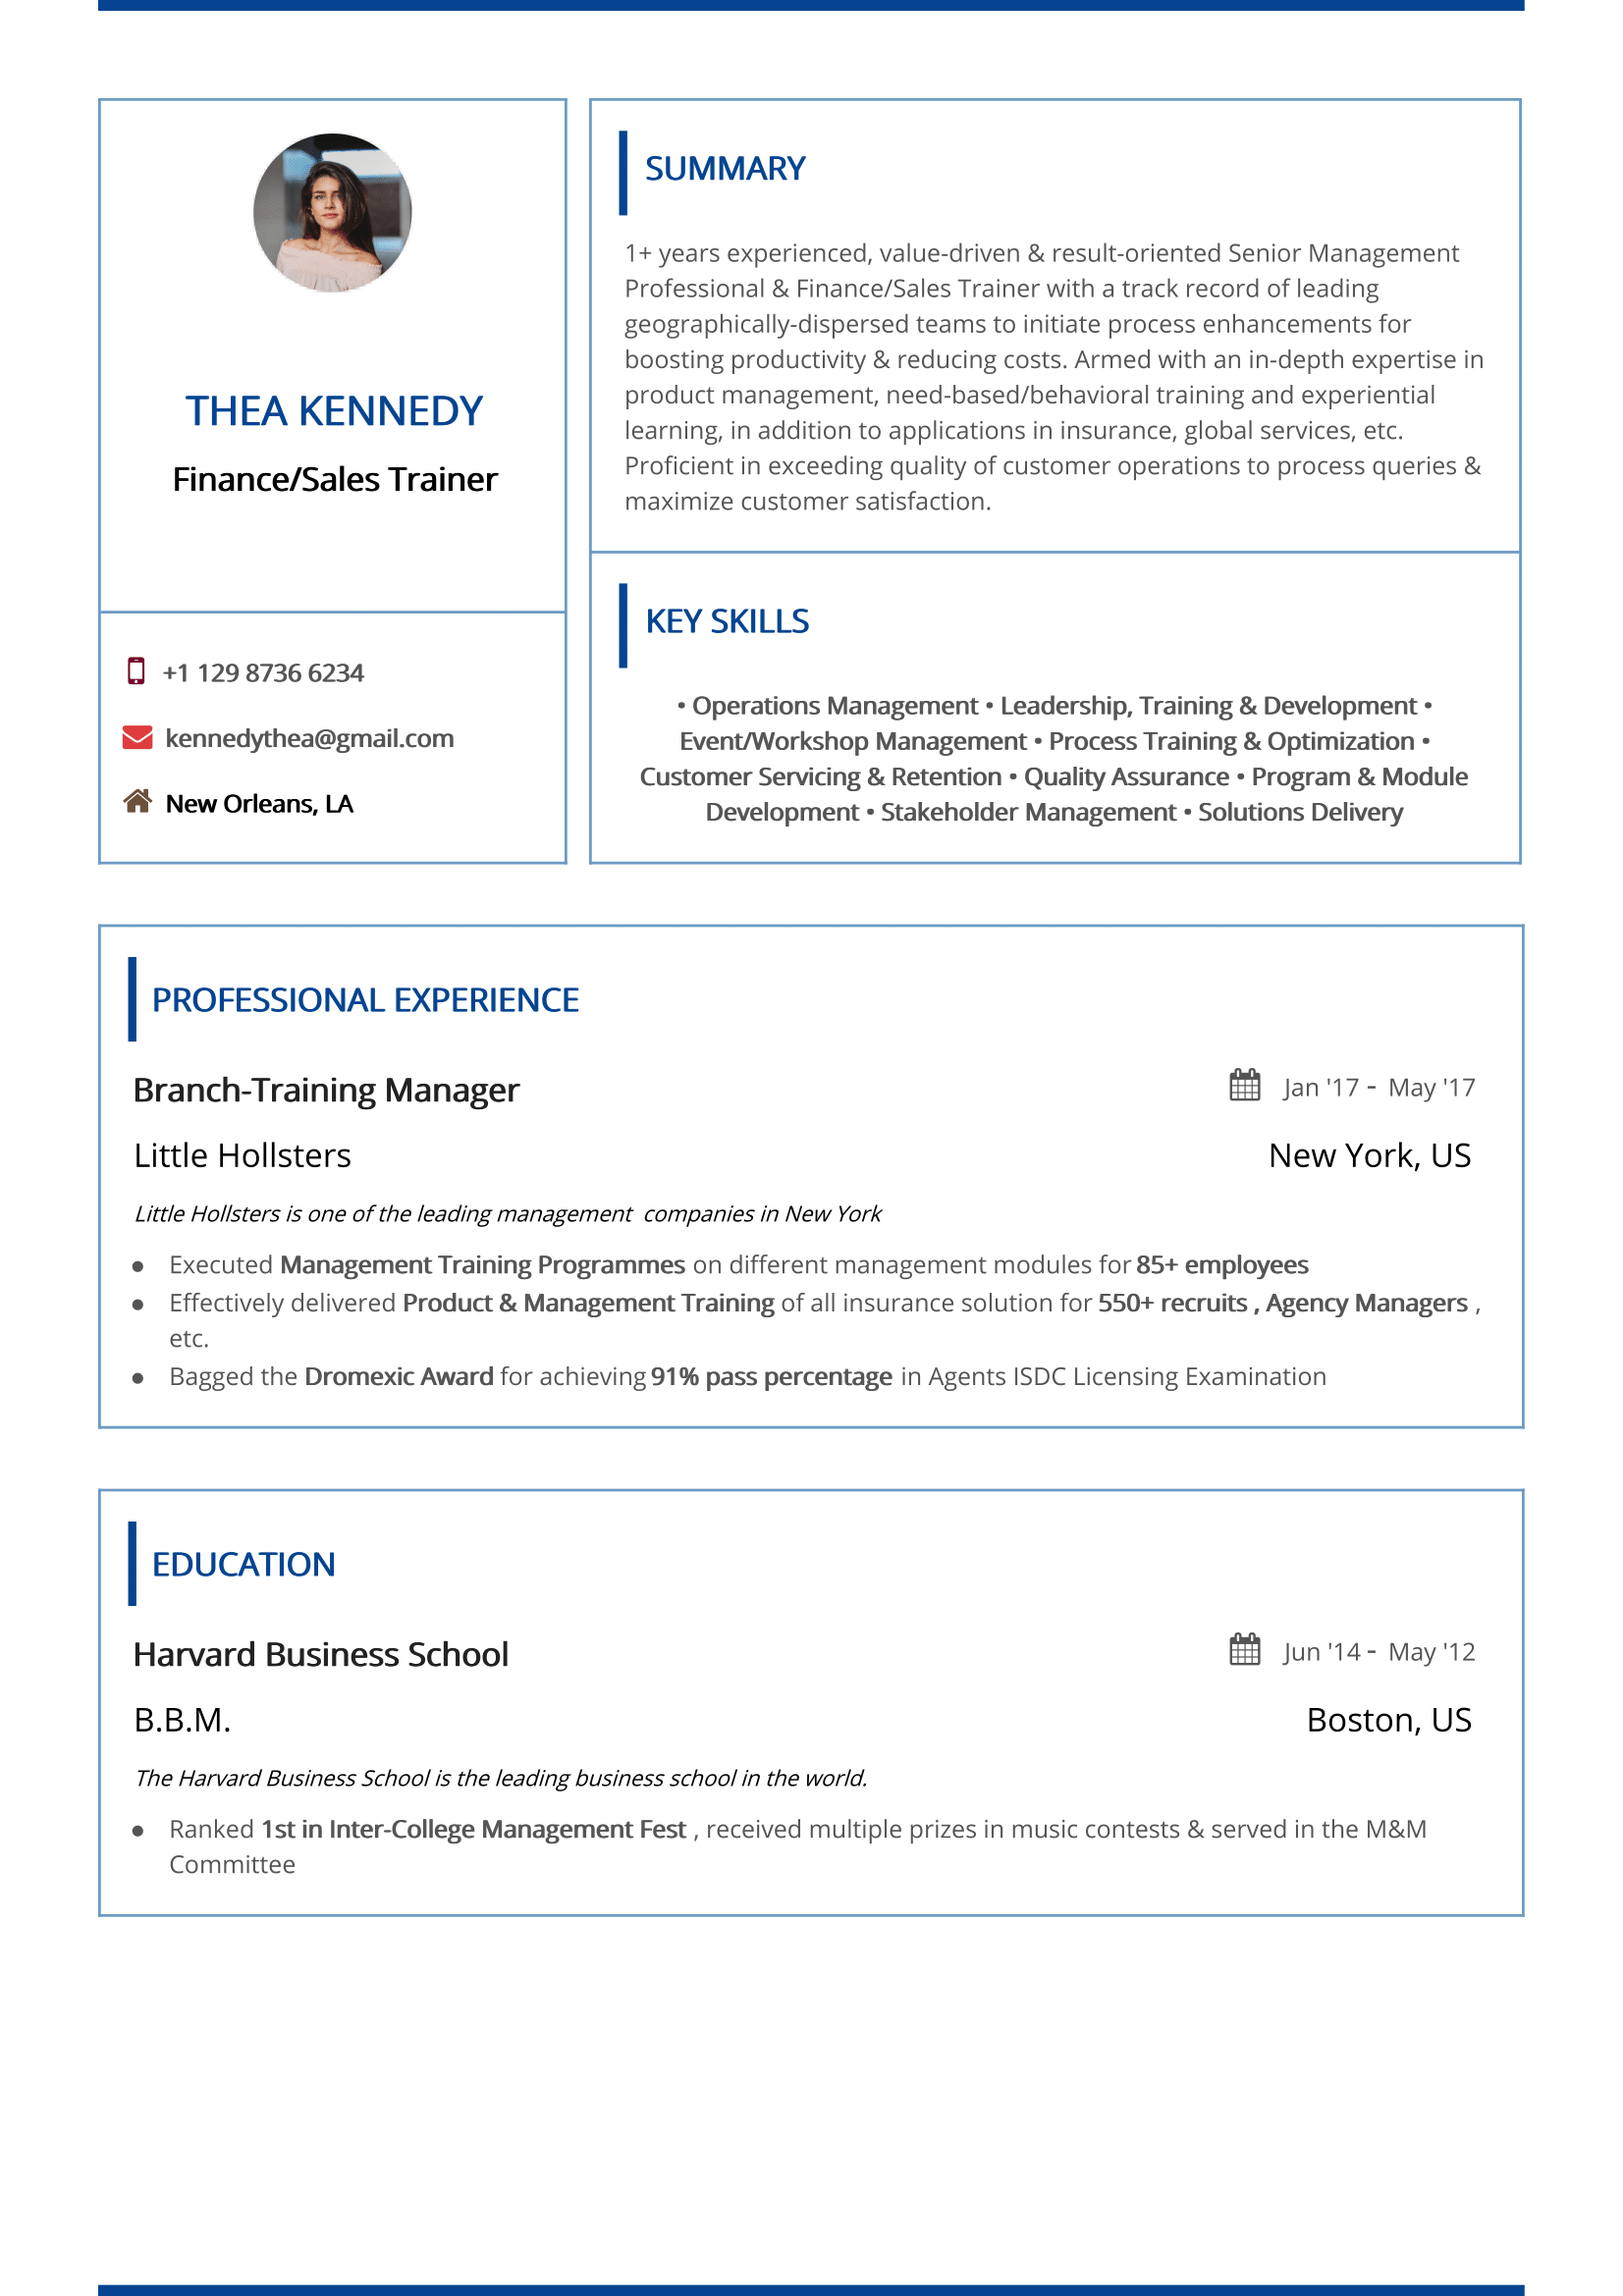 boxed-minimal-resume-template